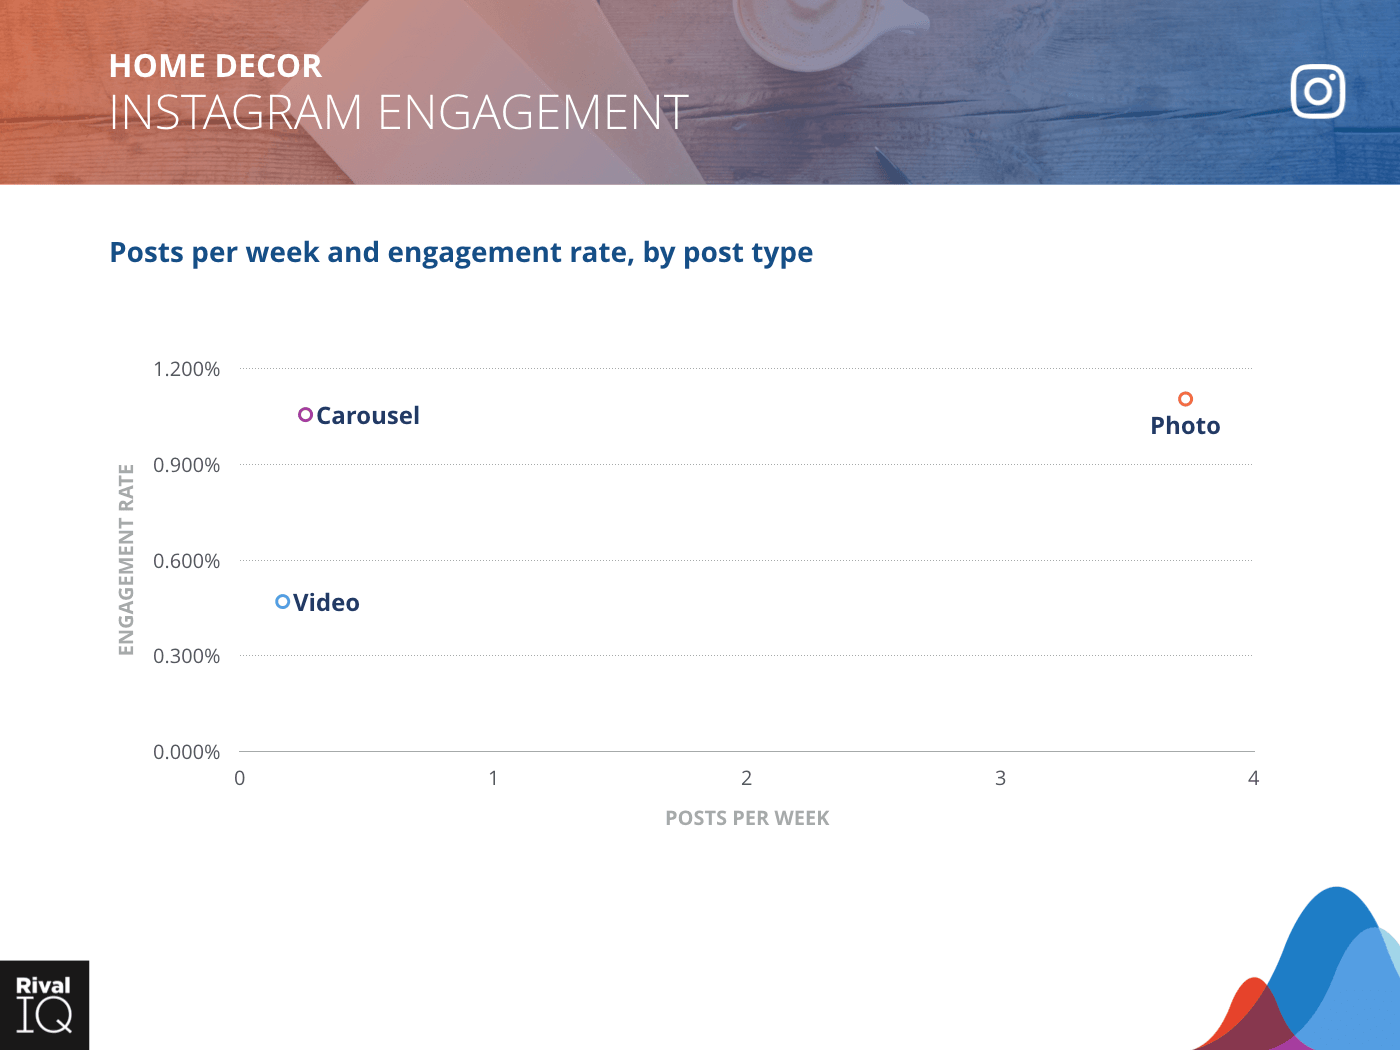 Home Decor Industry: scatter graph, average post per week by type and engagement rate on Instagram